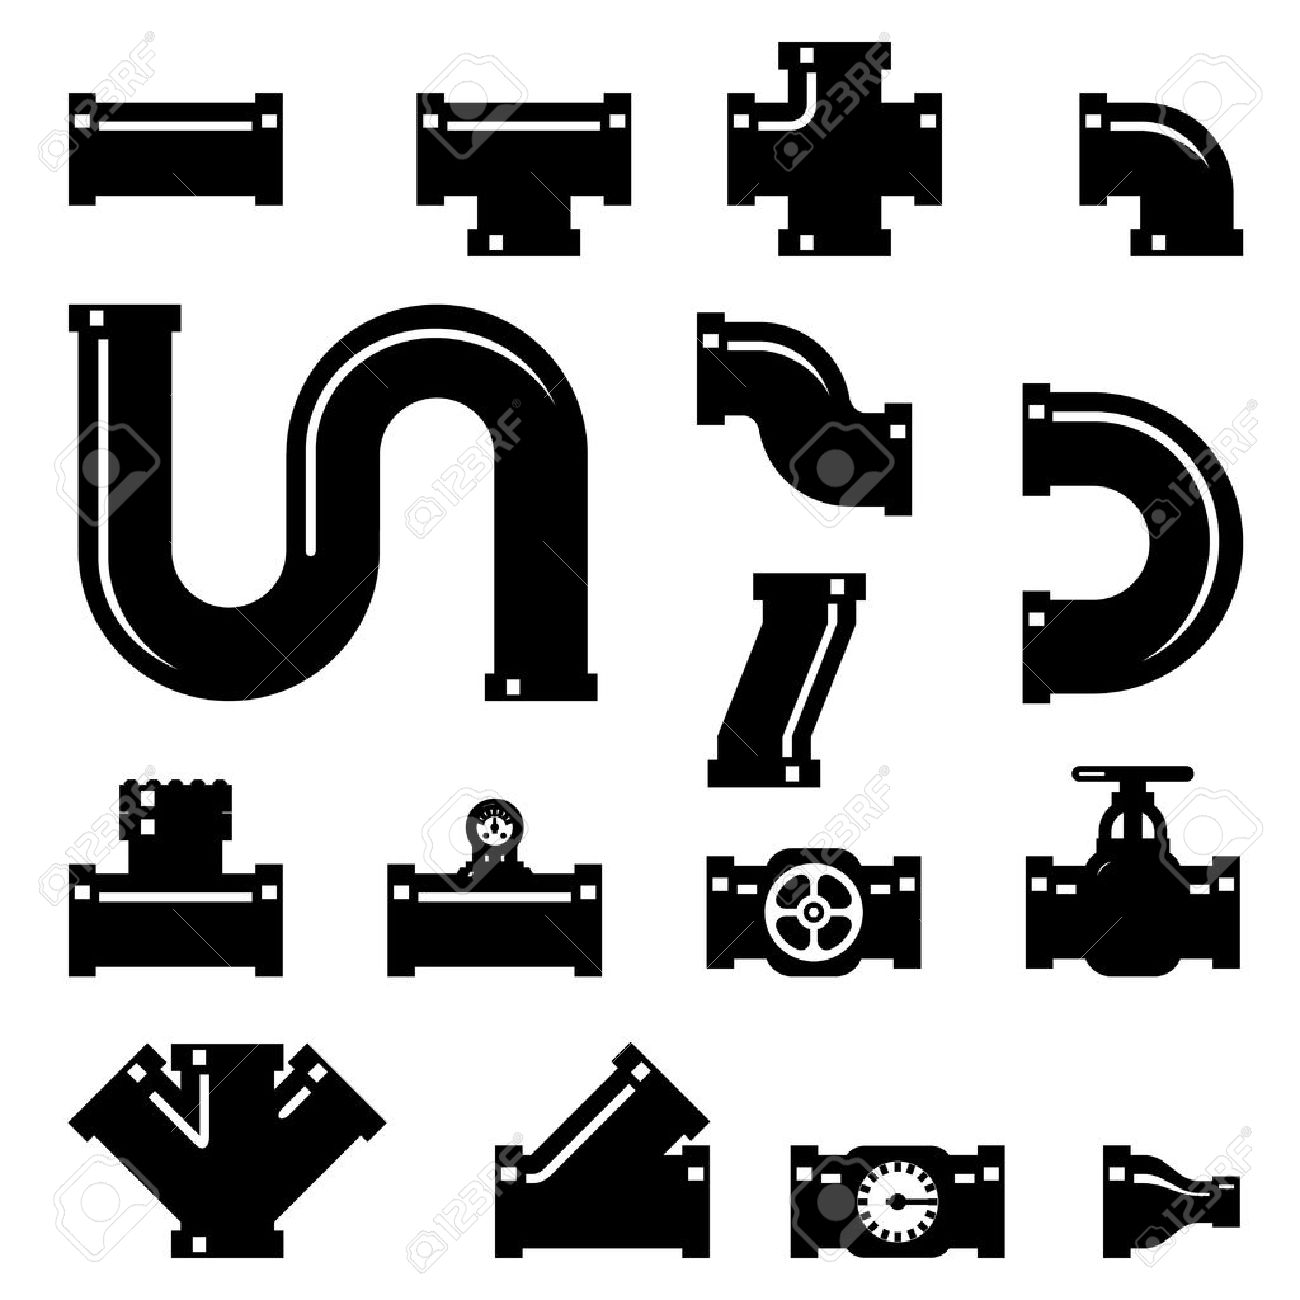 Pipe construction clipart 20 free Cliparts | Download ...